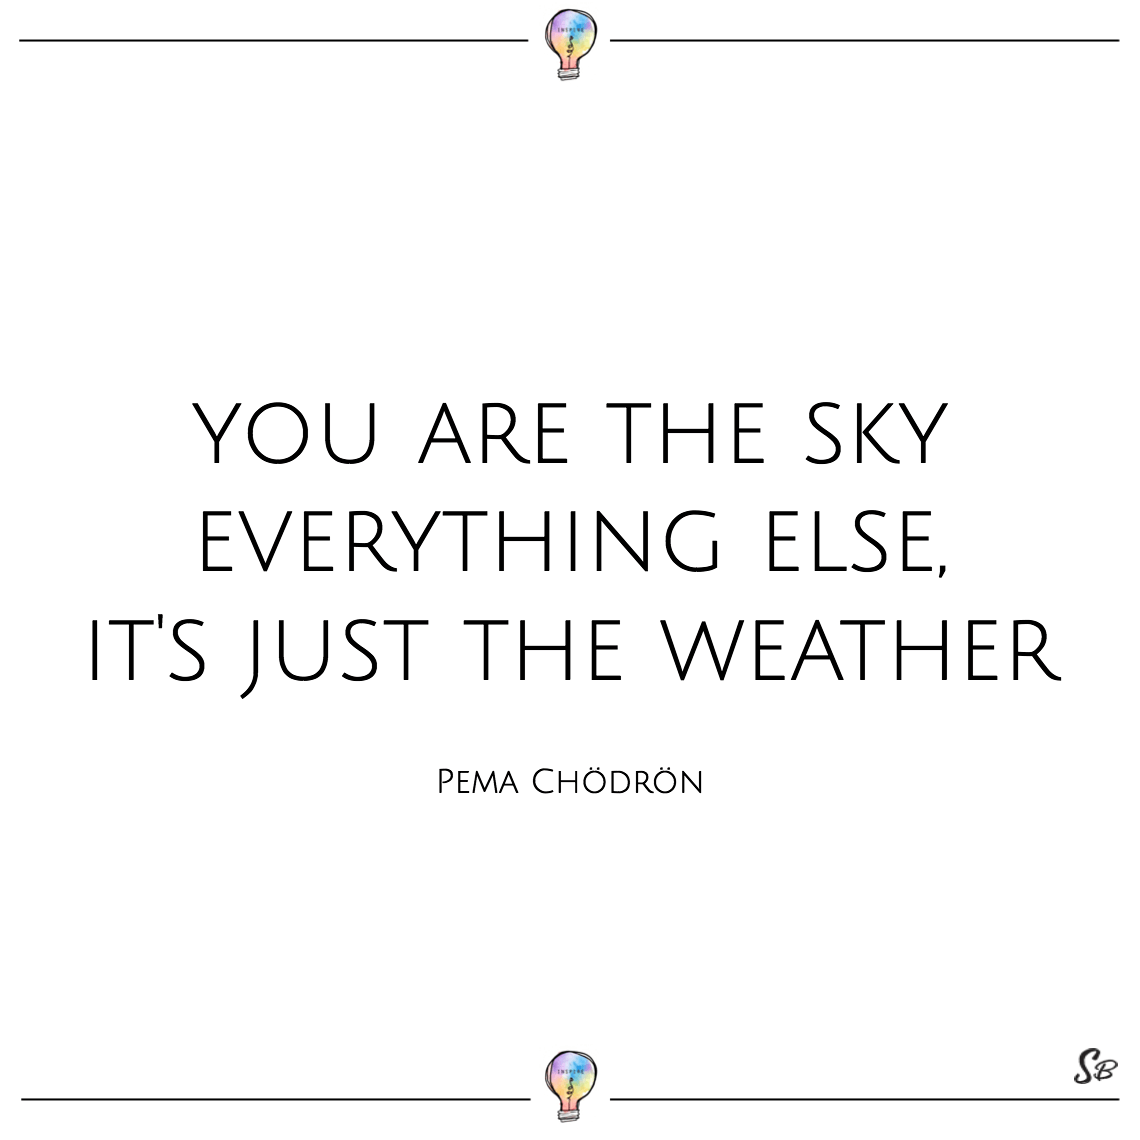 You are the sky everything else, it's just the weather pema chödrön